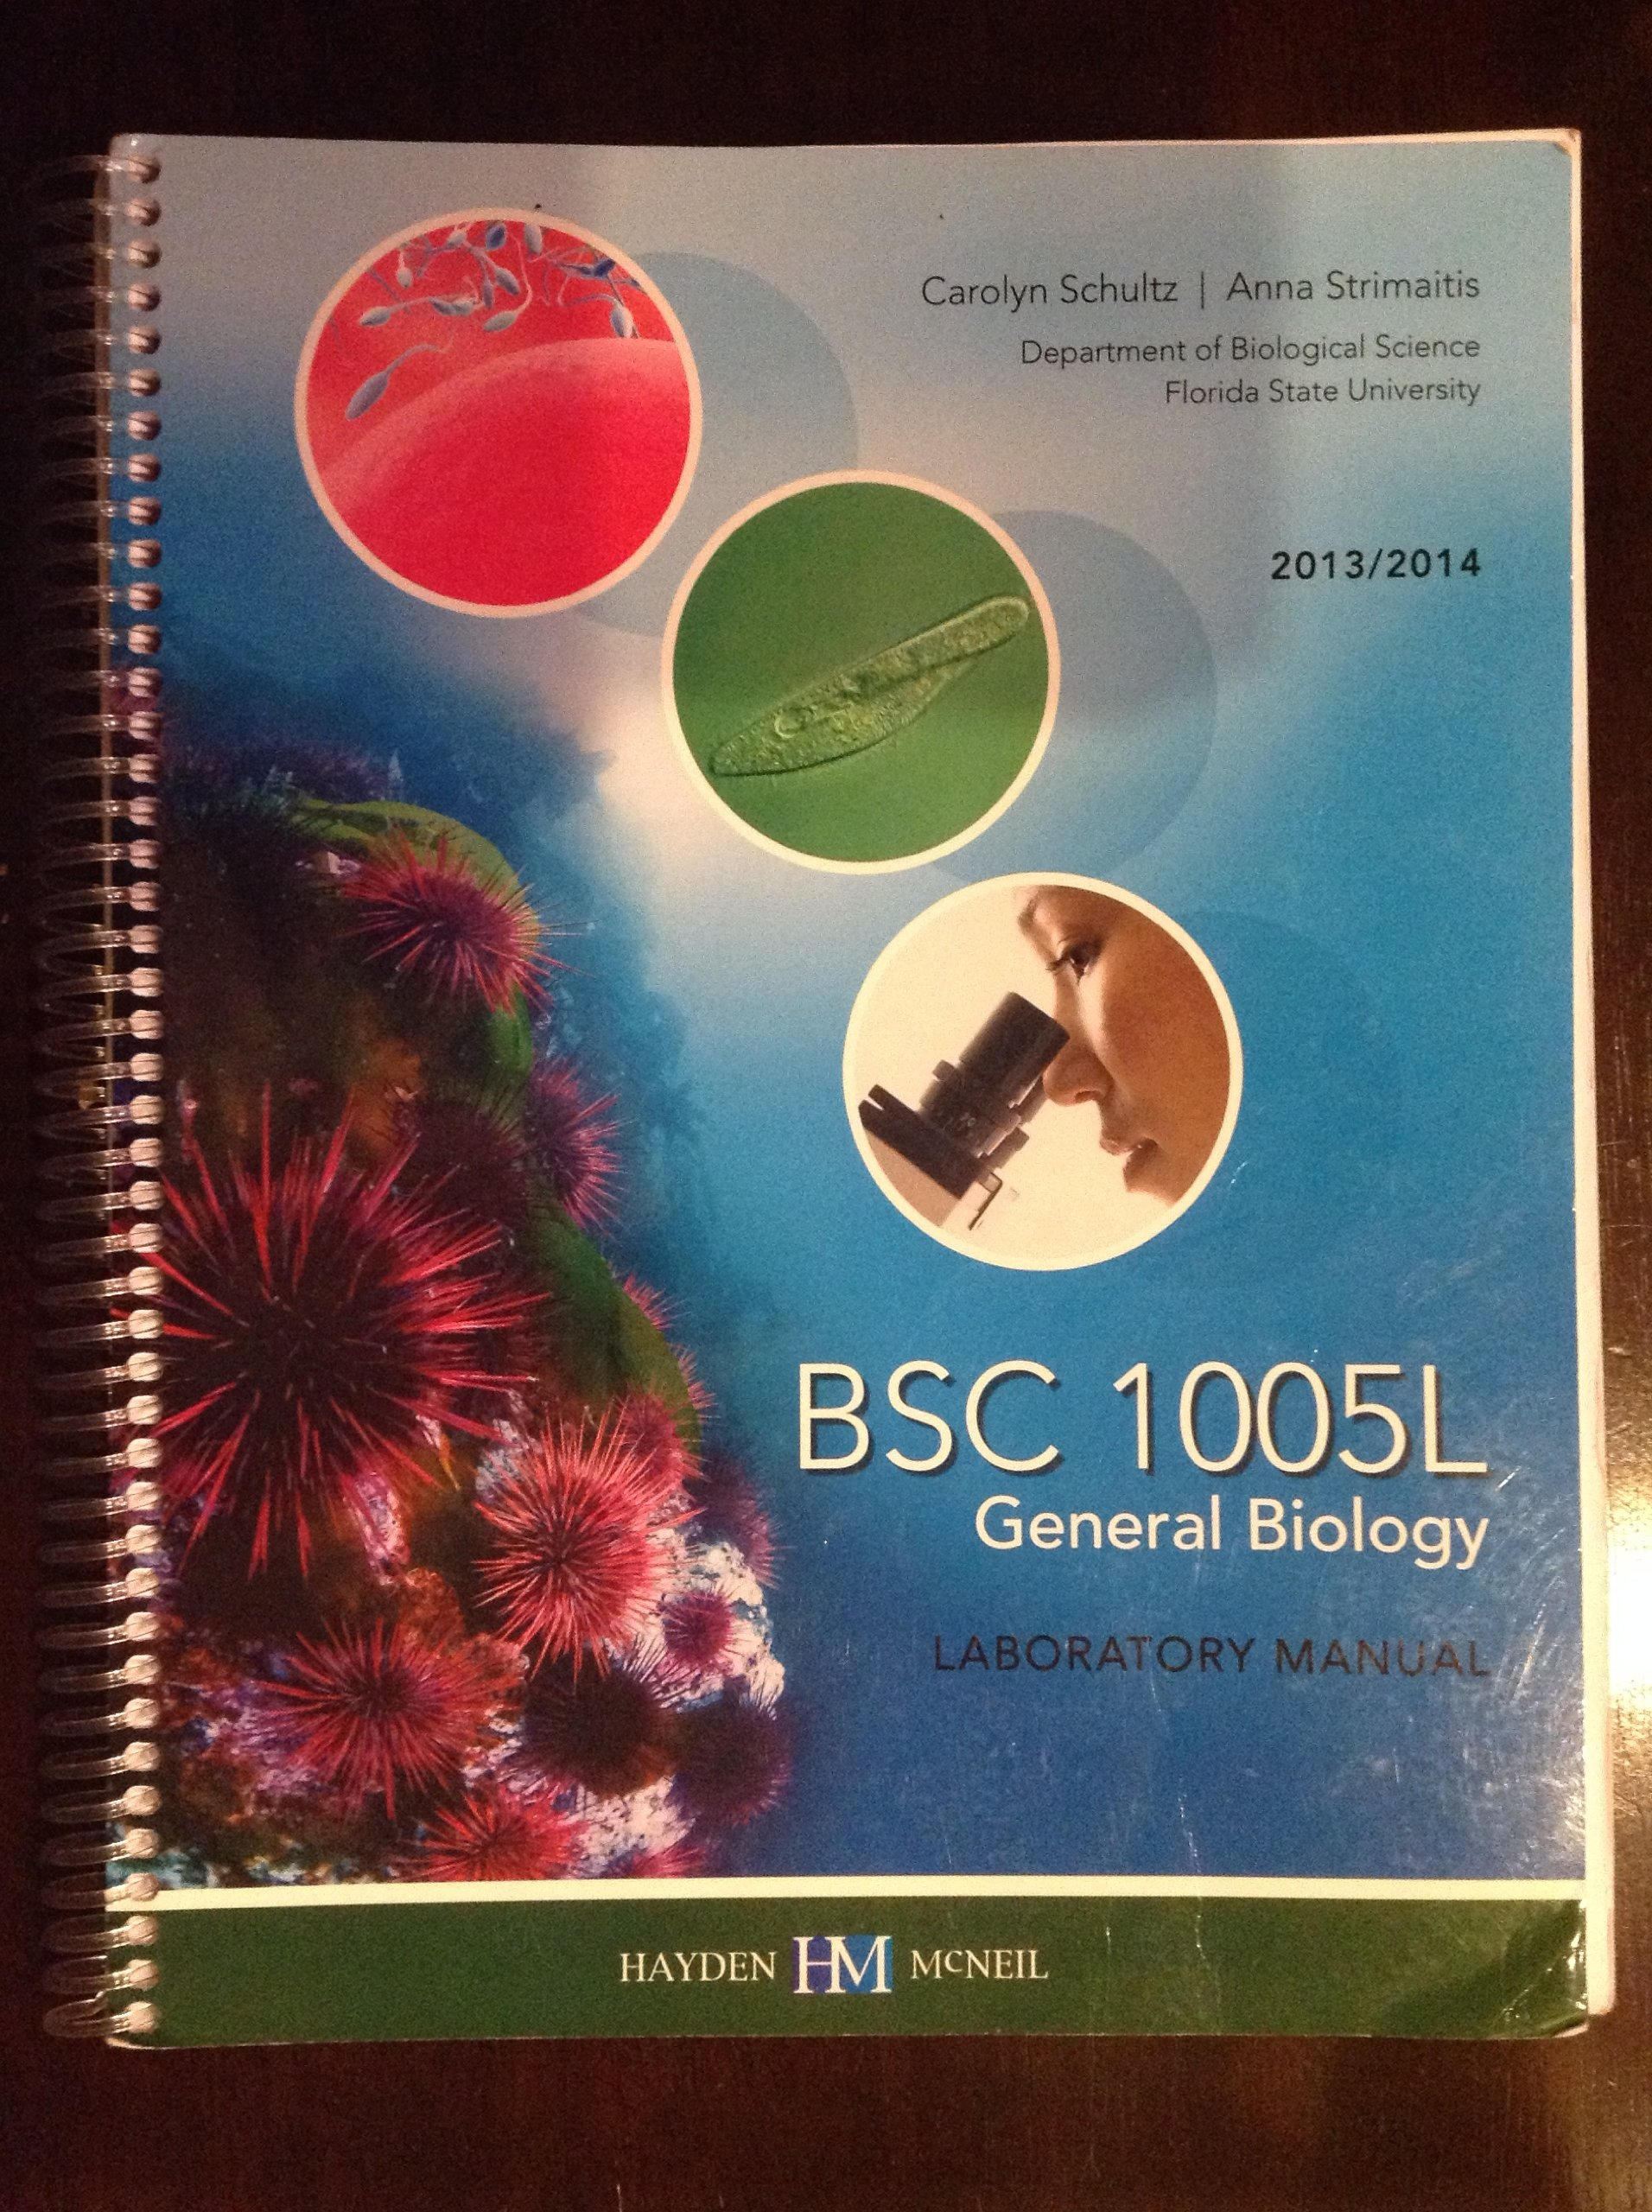 BSC 1005L General Biology Laboratory Manual: 9780738041957: Amazon.com:  Books